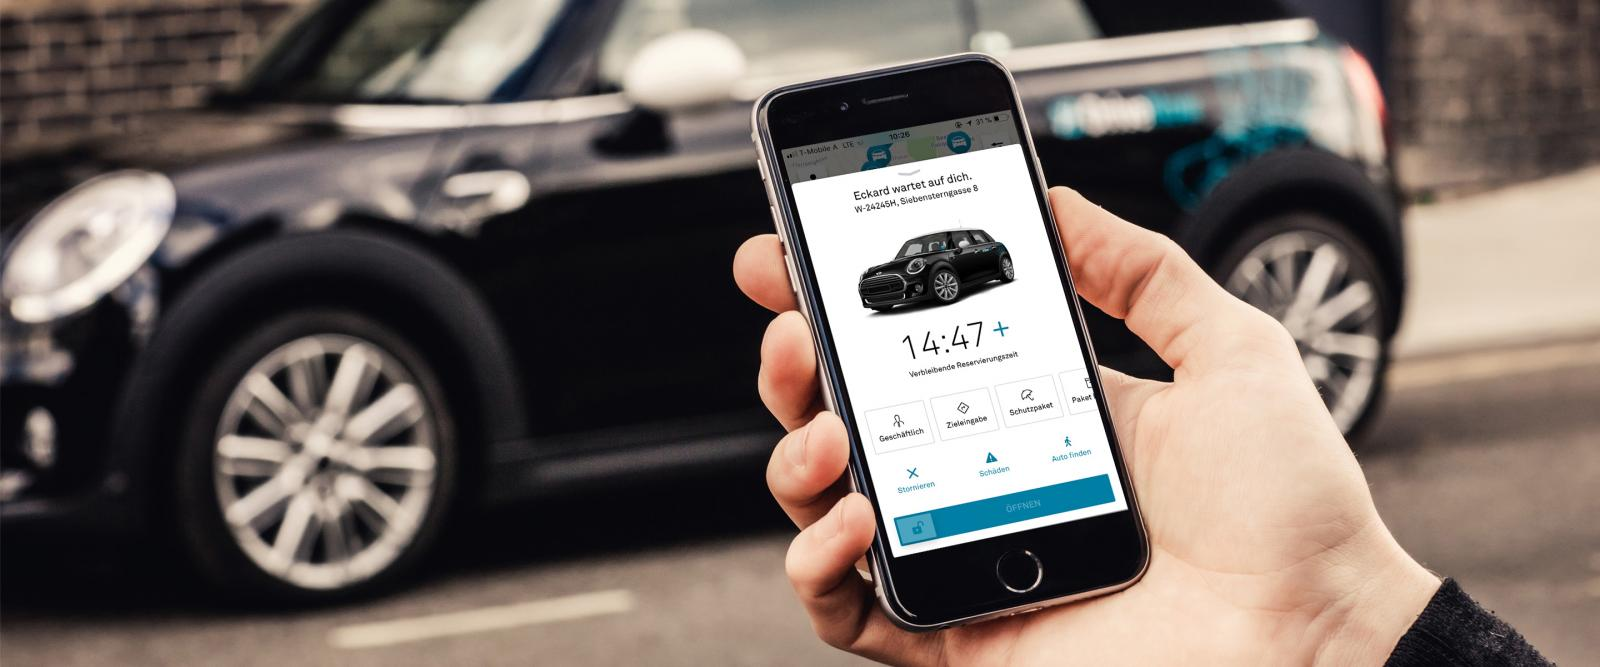 Bmw Expands Car Sharing Service Drivenow In London Business Day Ghana